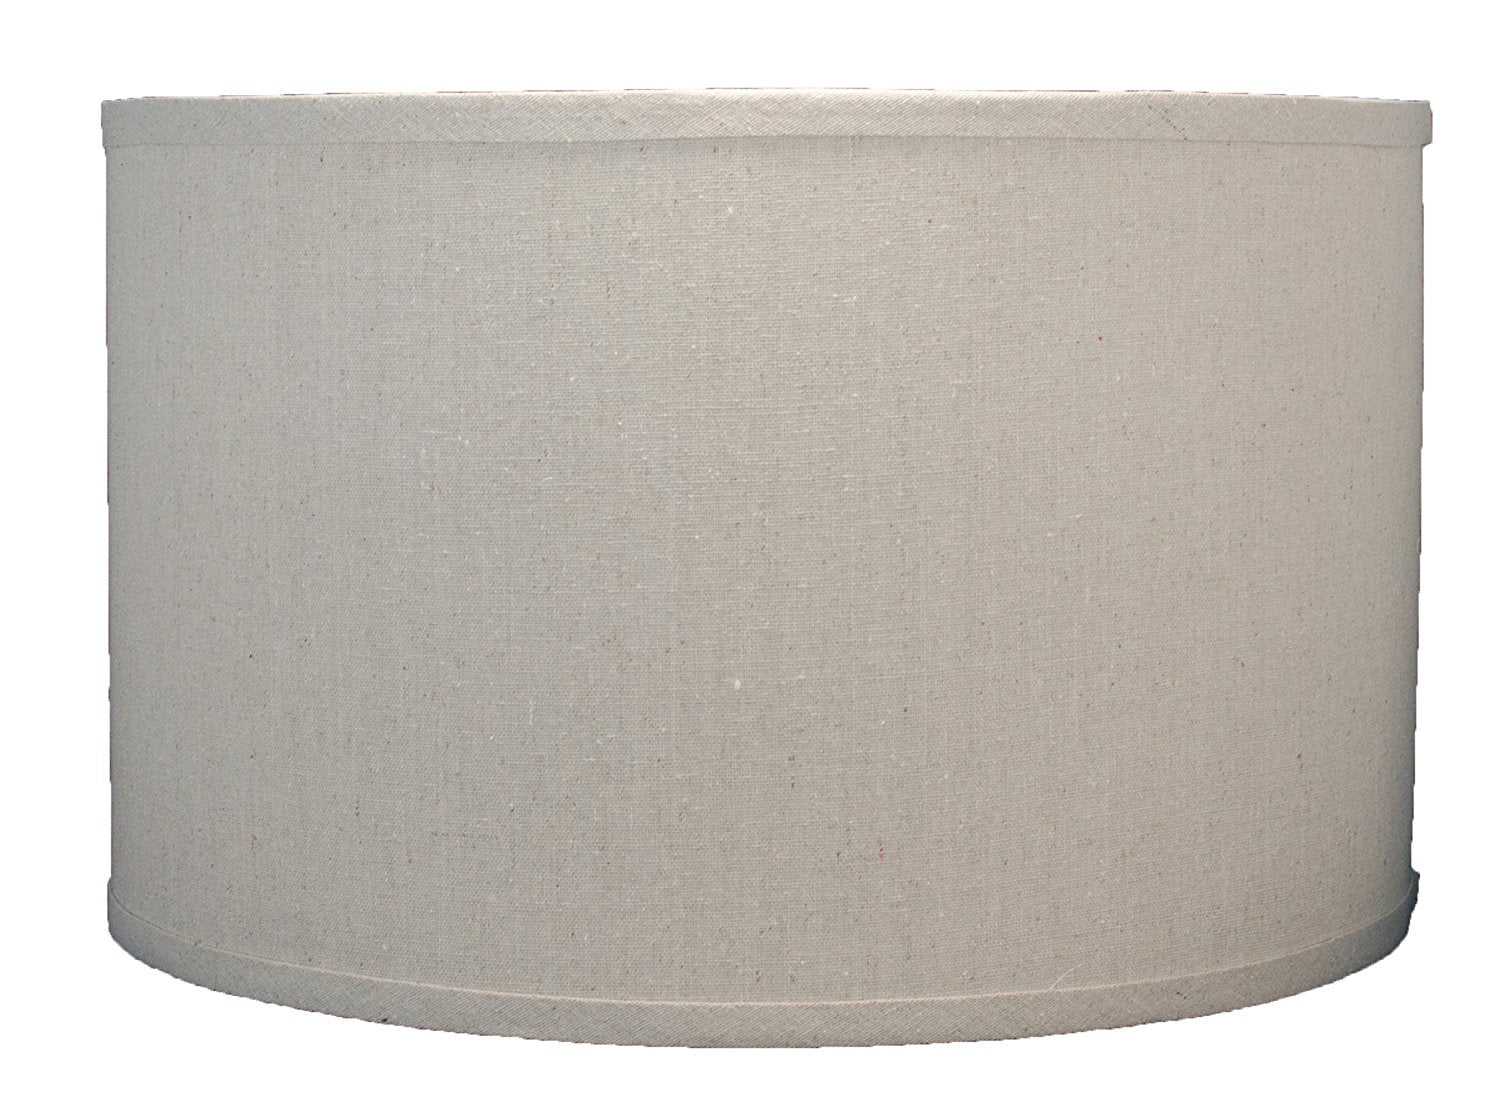 Linen Drum Lamp Shade, 16-inch By 16-inch By 10-inch, Natural, Spider